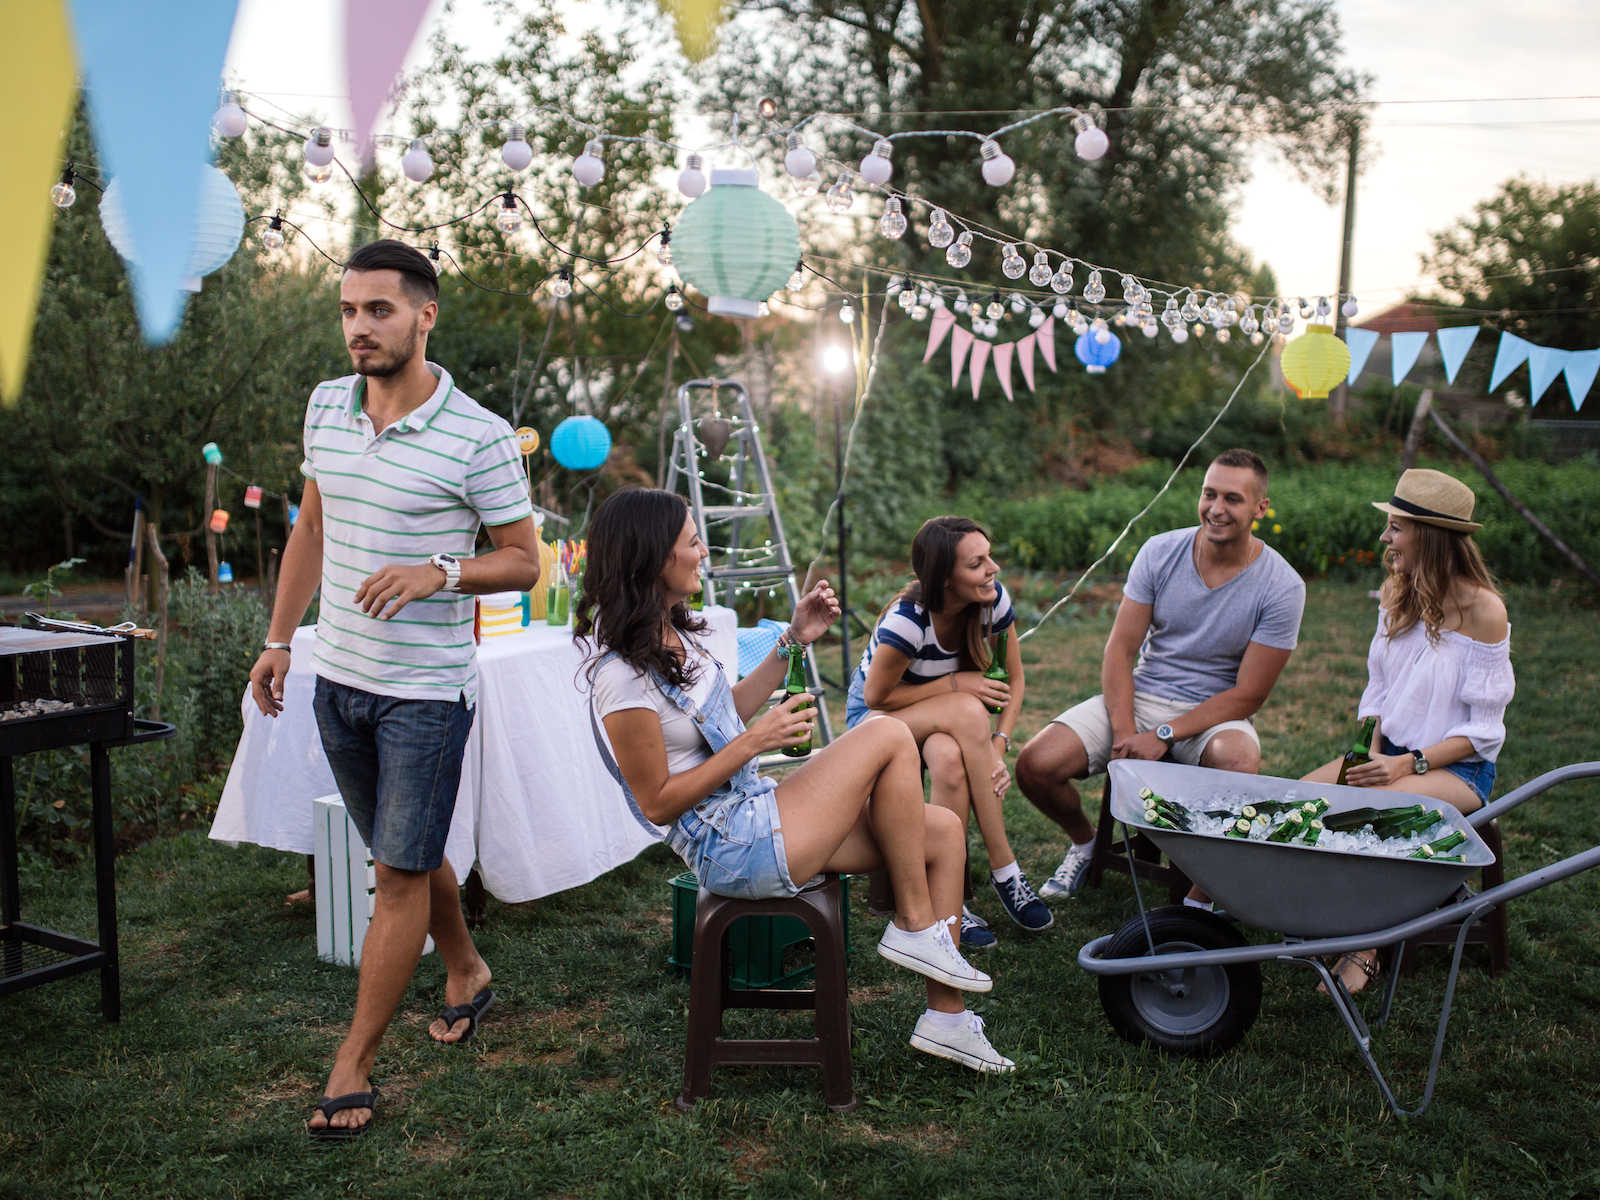 5 Great Deals on Amazon for Your Next Outdoor Party